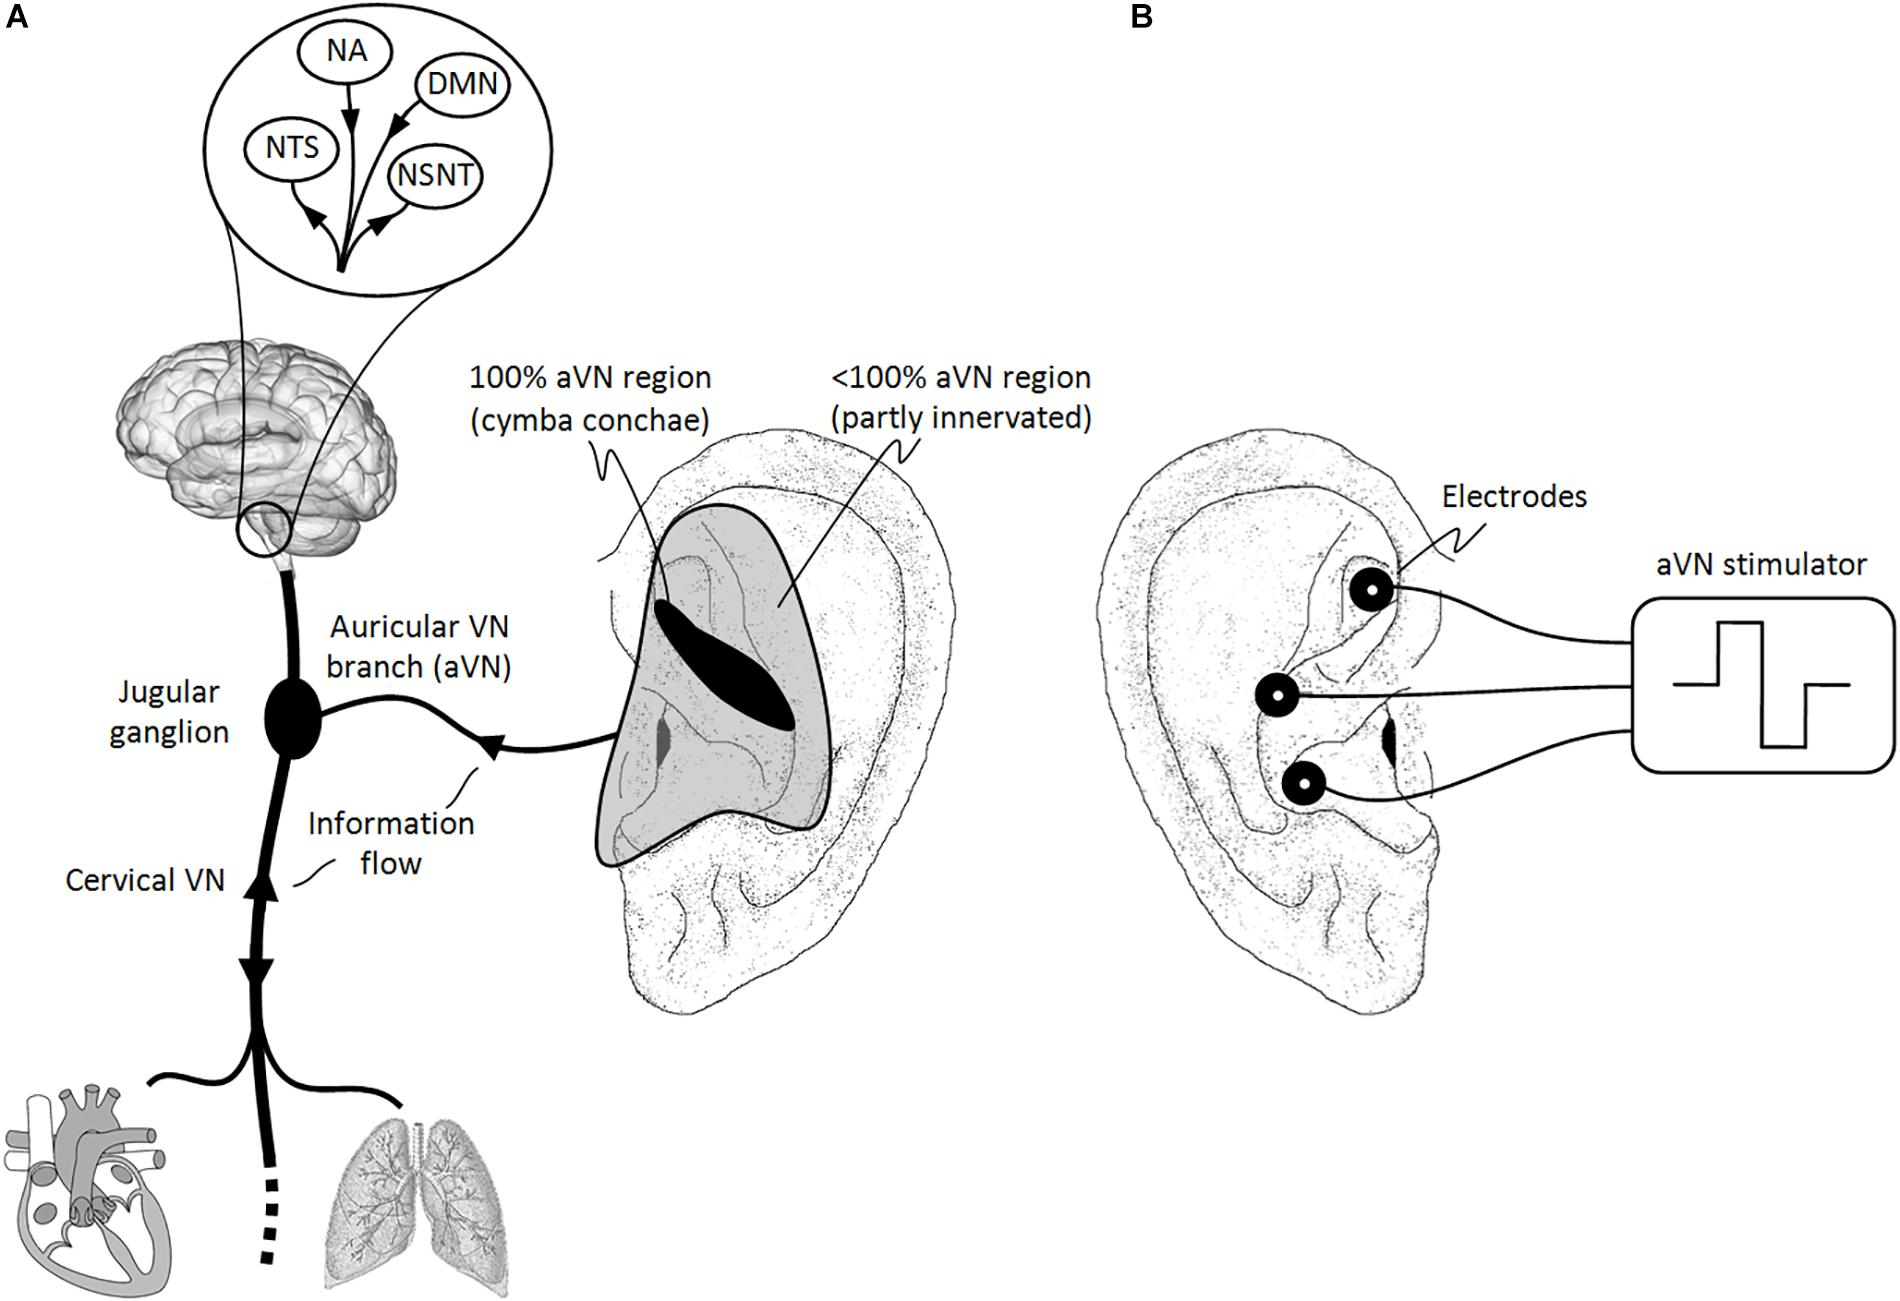 Frontiers | Current Directions in the Auricular Vagus Nerve